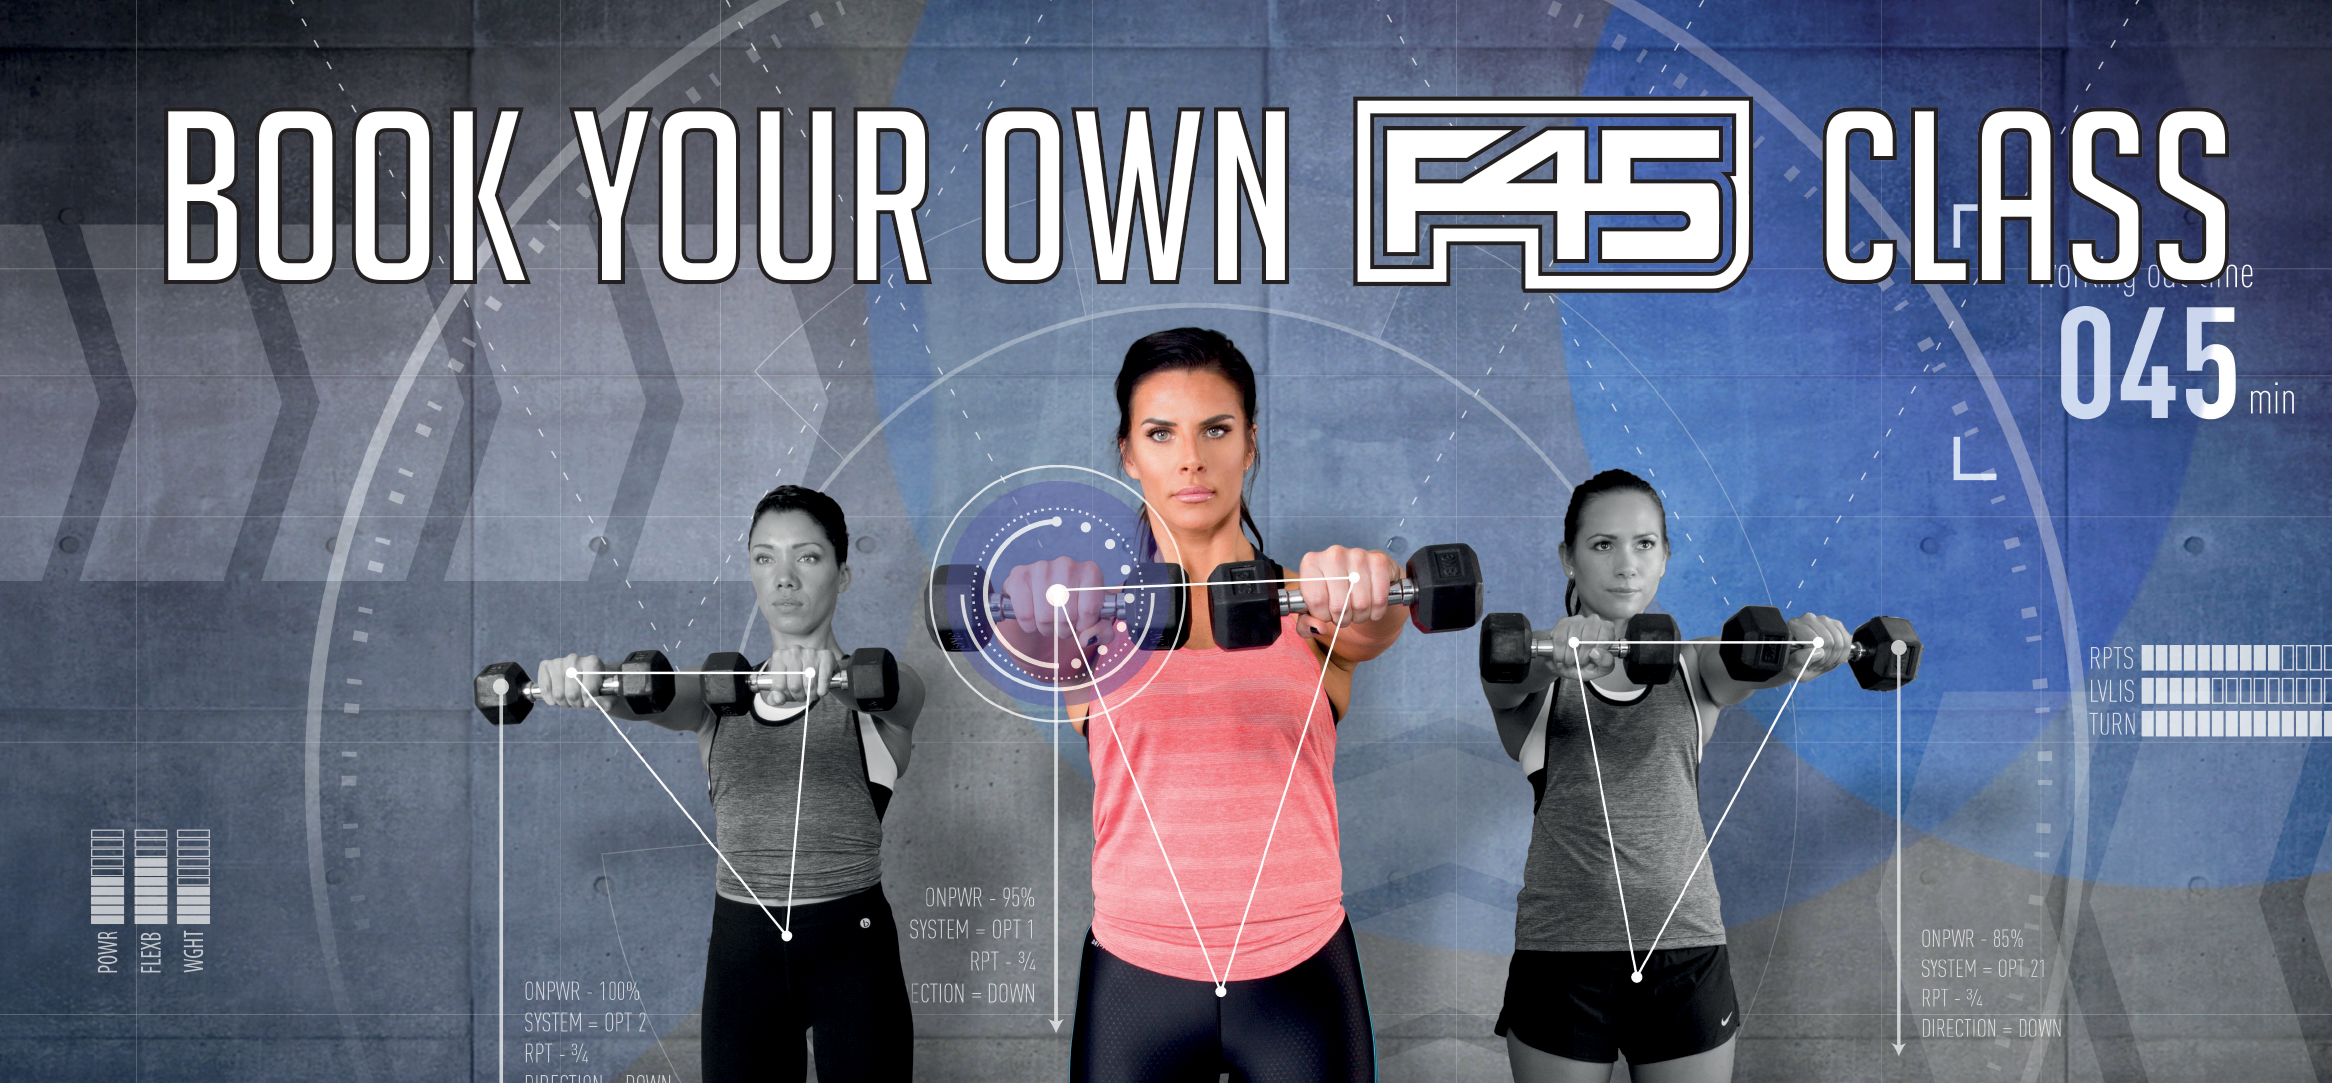 Book your own F45 class promo image